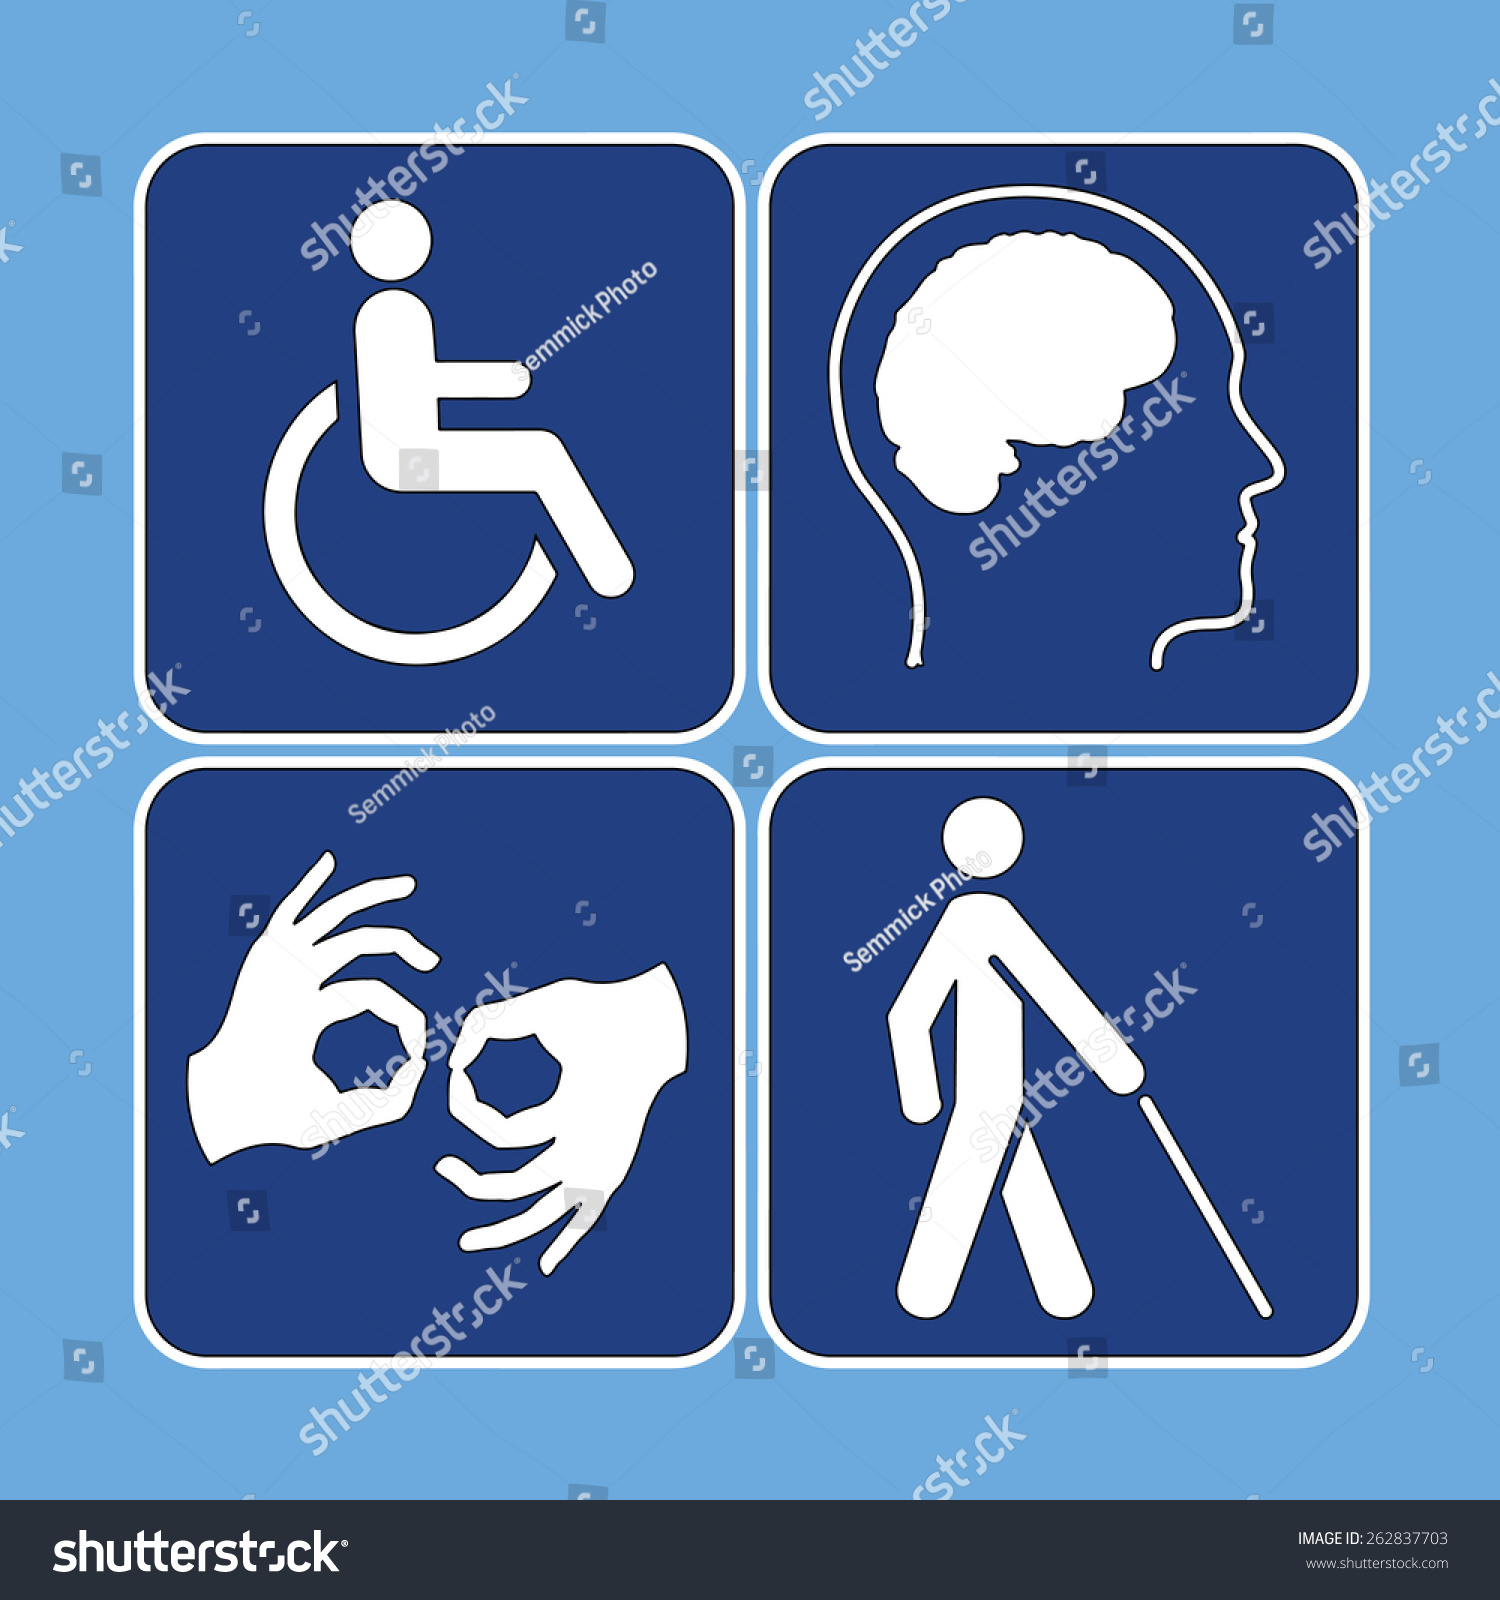 Vector set disability symbols blue white stock vector 262837703 vector set of disability symbols in blue and white biocorpaavc